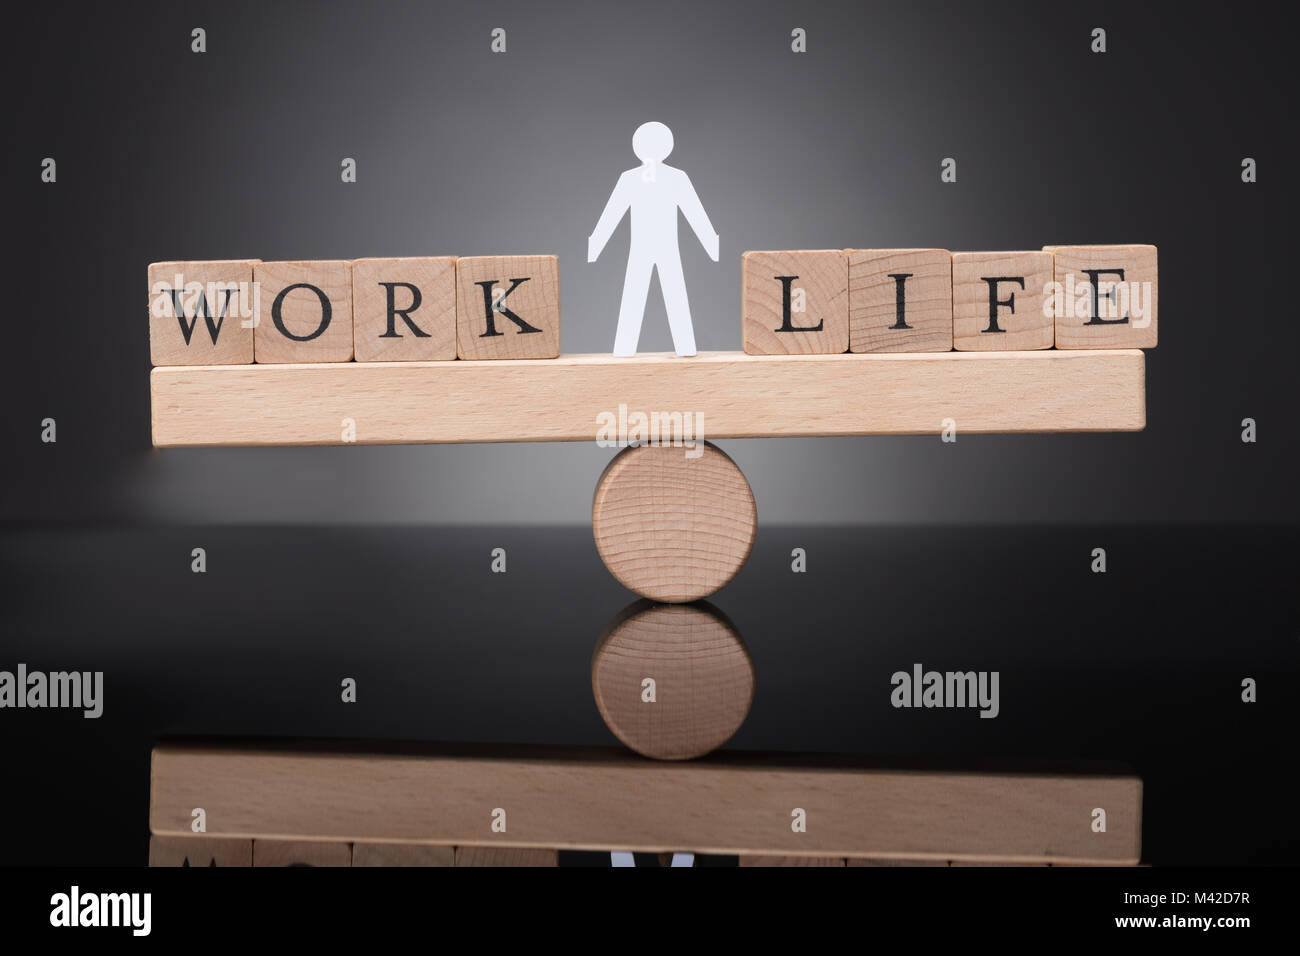 Human Figure Balancing Between Work And Life On Wooden Seesaw Against Black Background - Stock Image